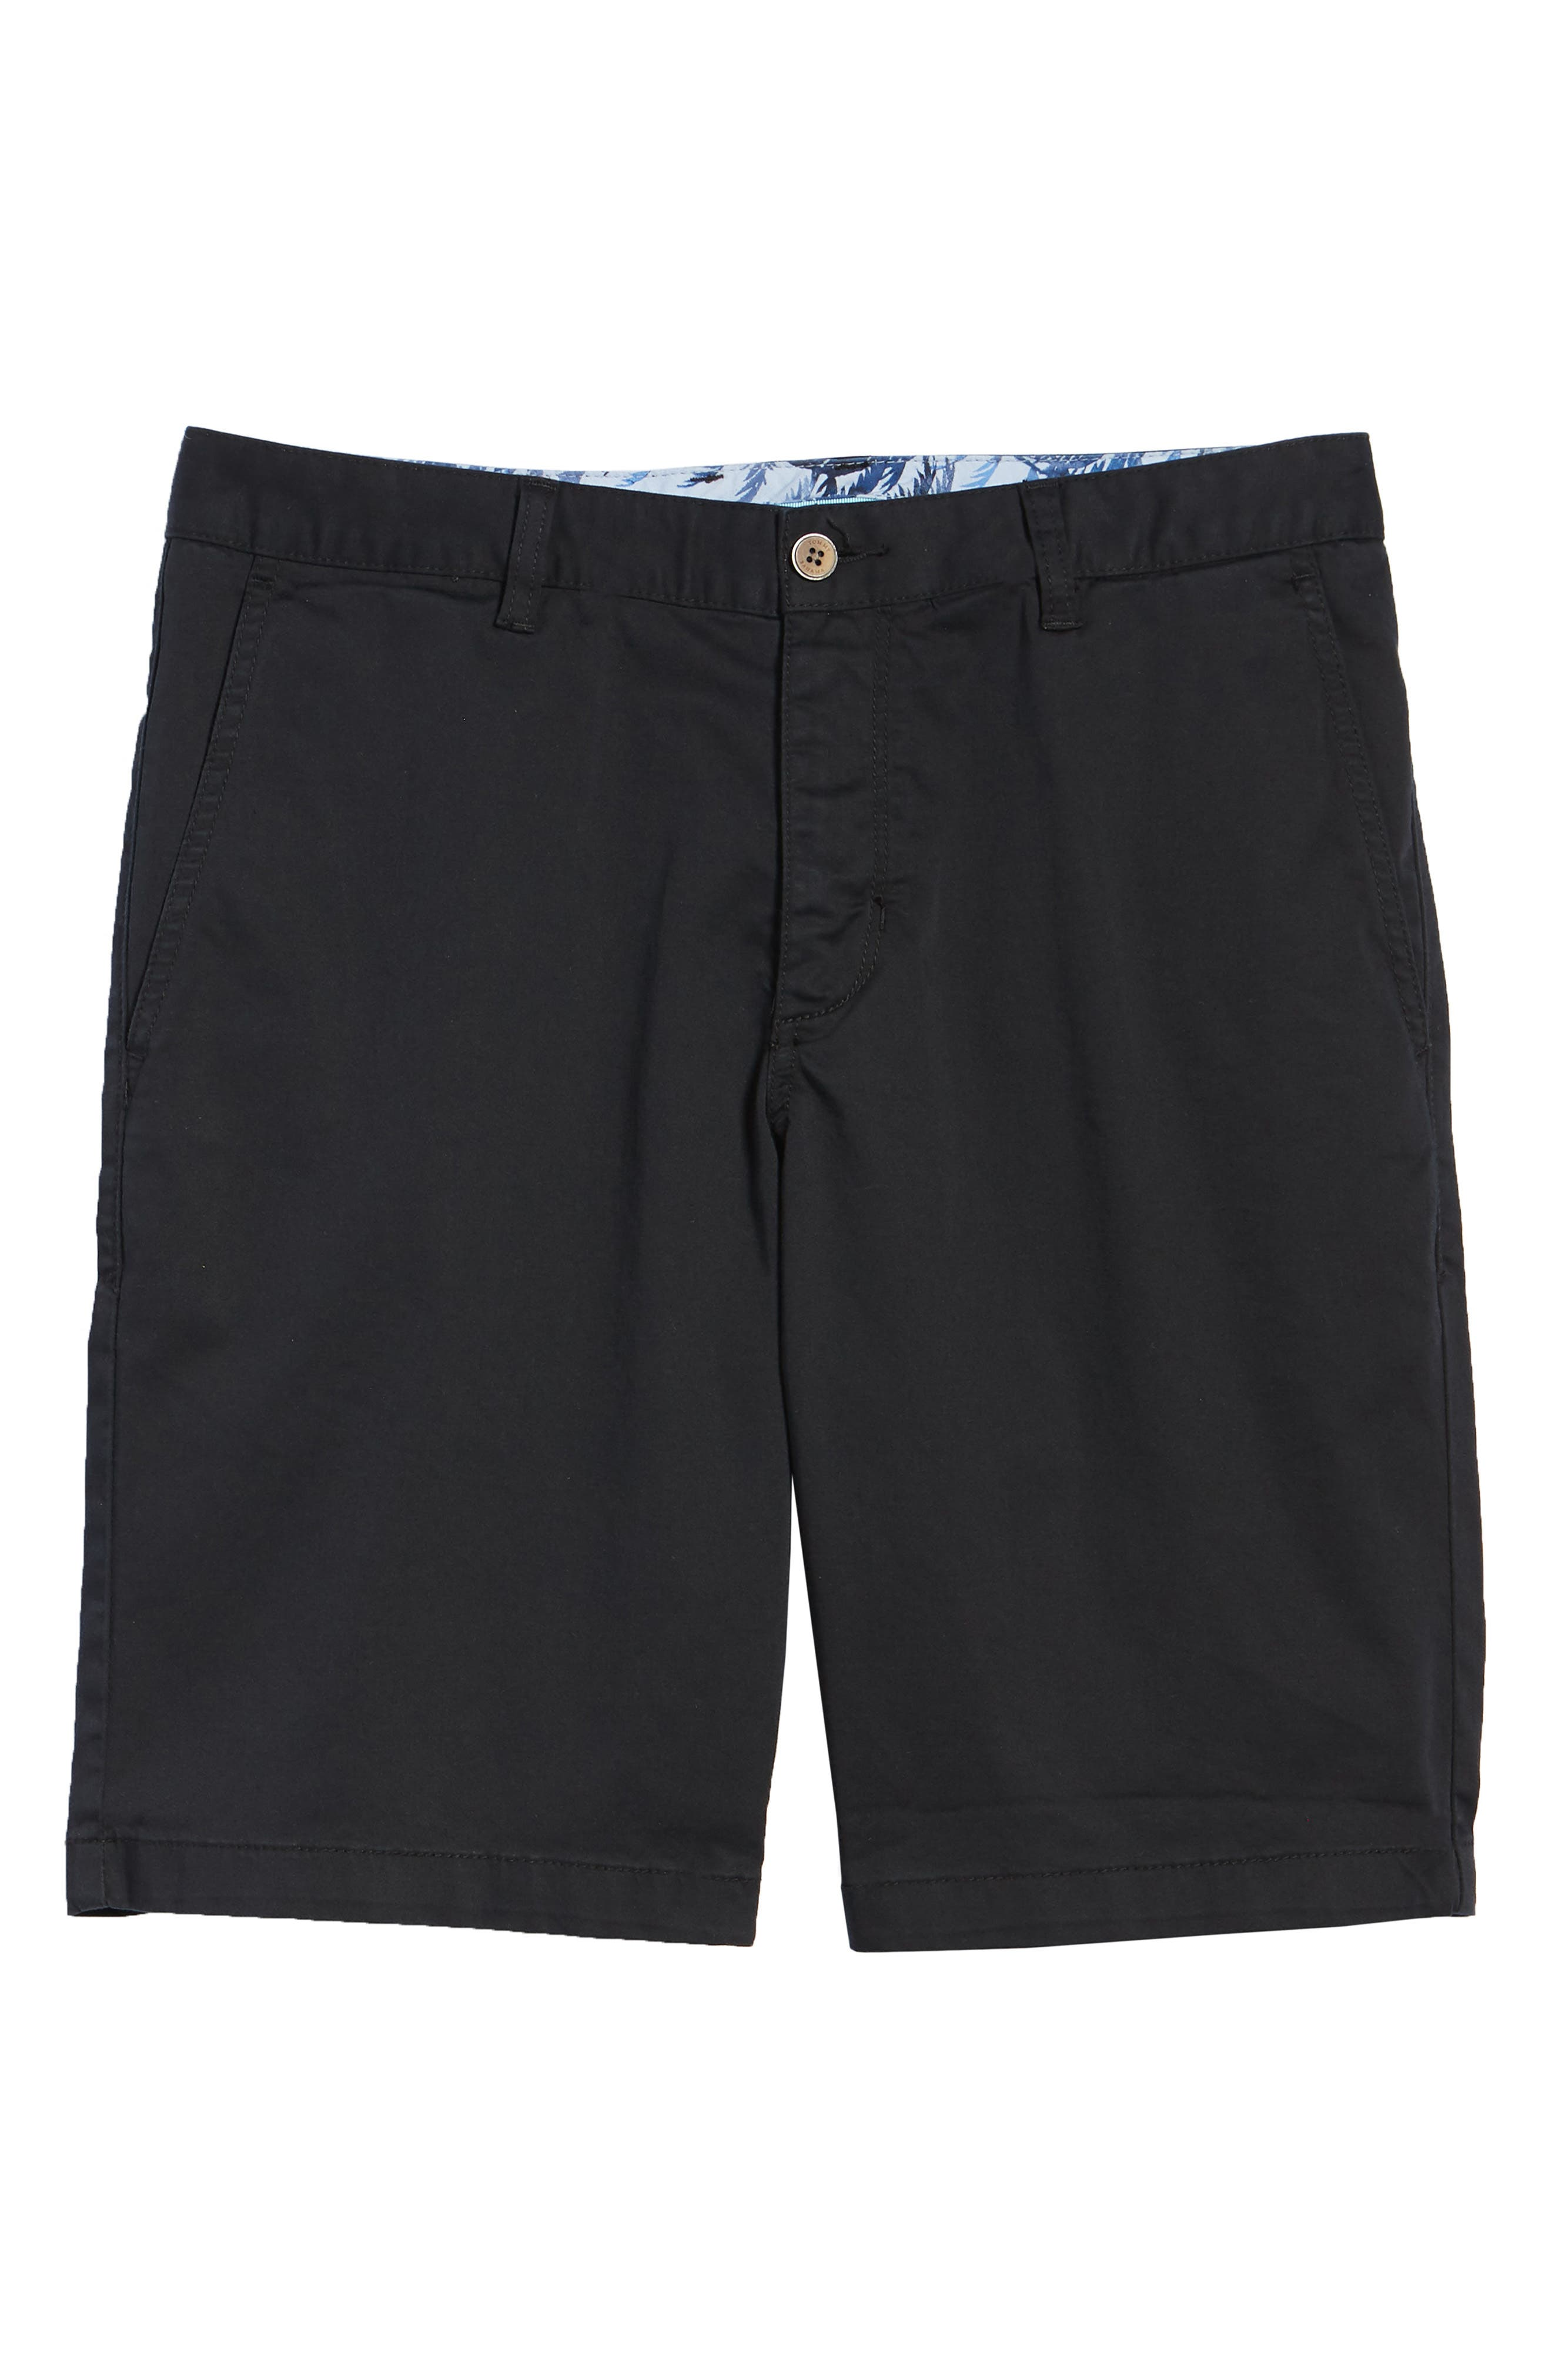 Boracay Chino Shorts,                             Alternate thumbnail 6, color,                             001